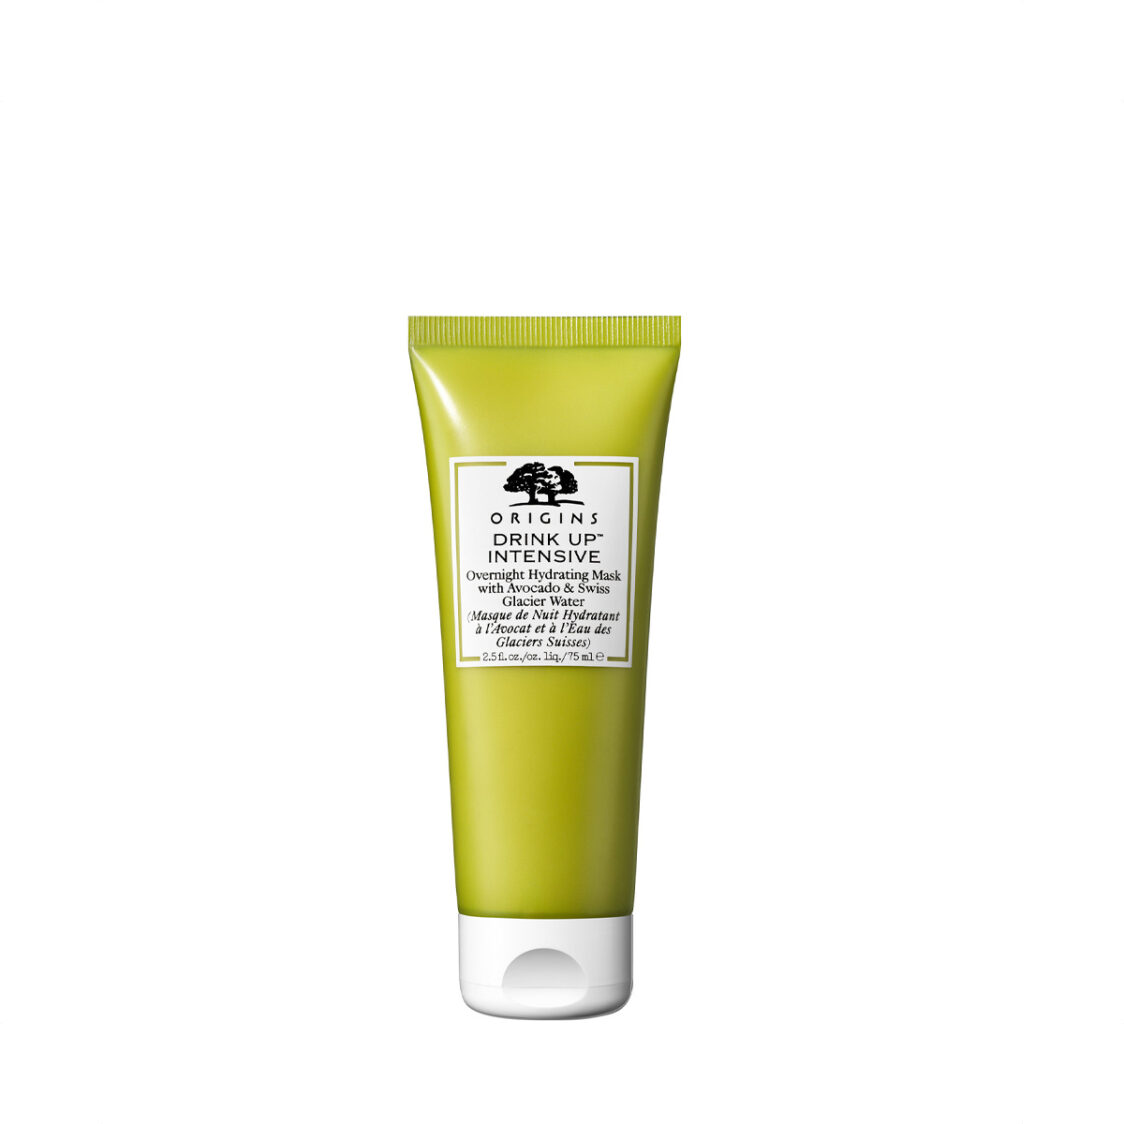 Origins Drink Up Intensive Overnight Hydrating Face Mask With Avocado  Glacier Water 75ml